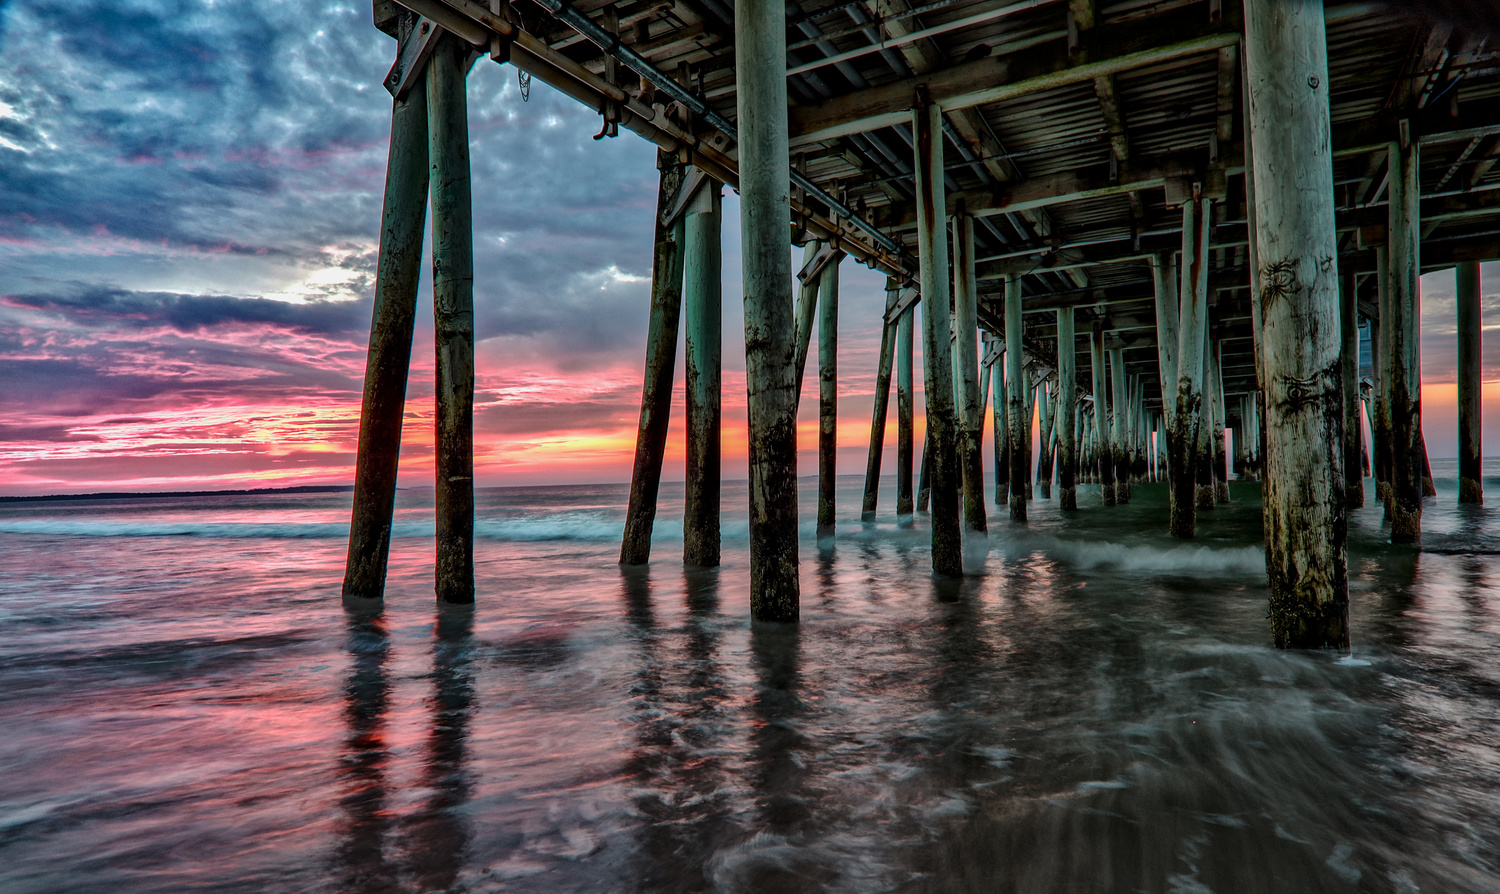 Under the OOB Pier by Steve Shannon